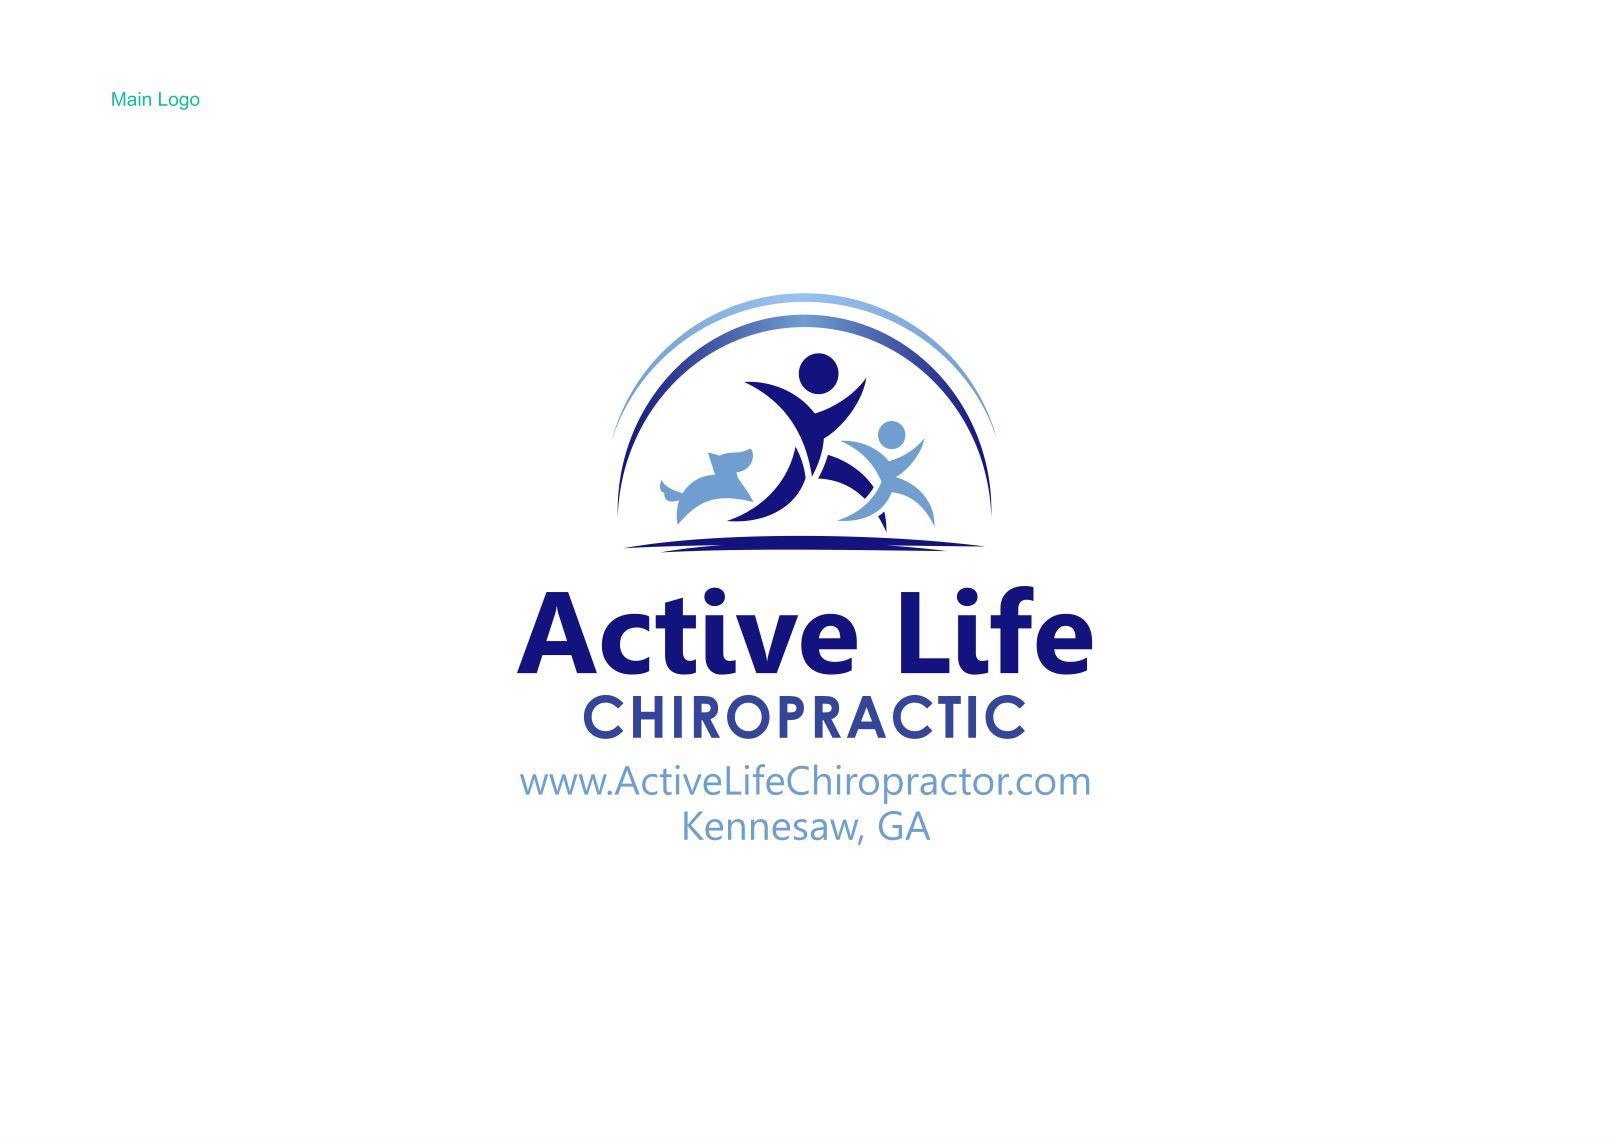 Additional Project for Active Life